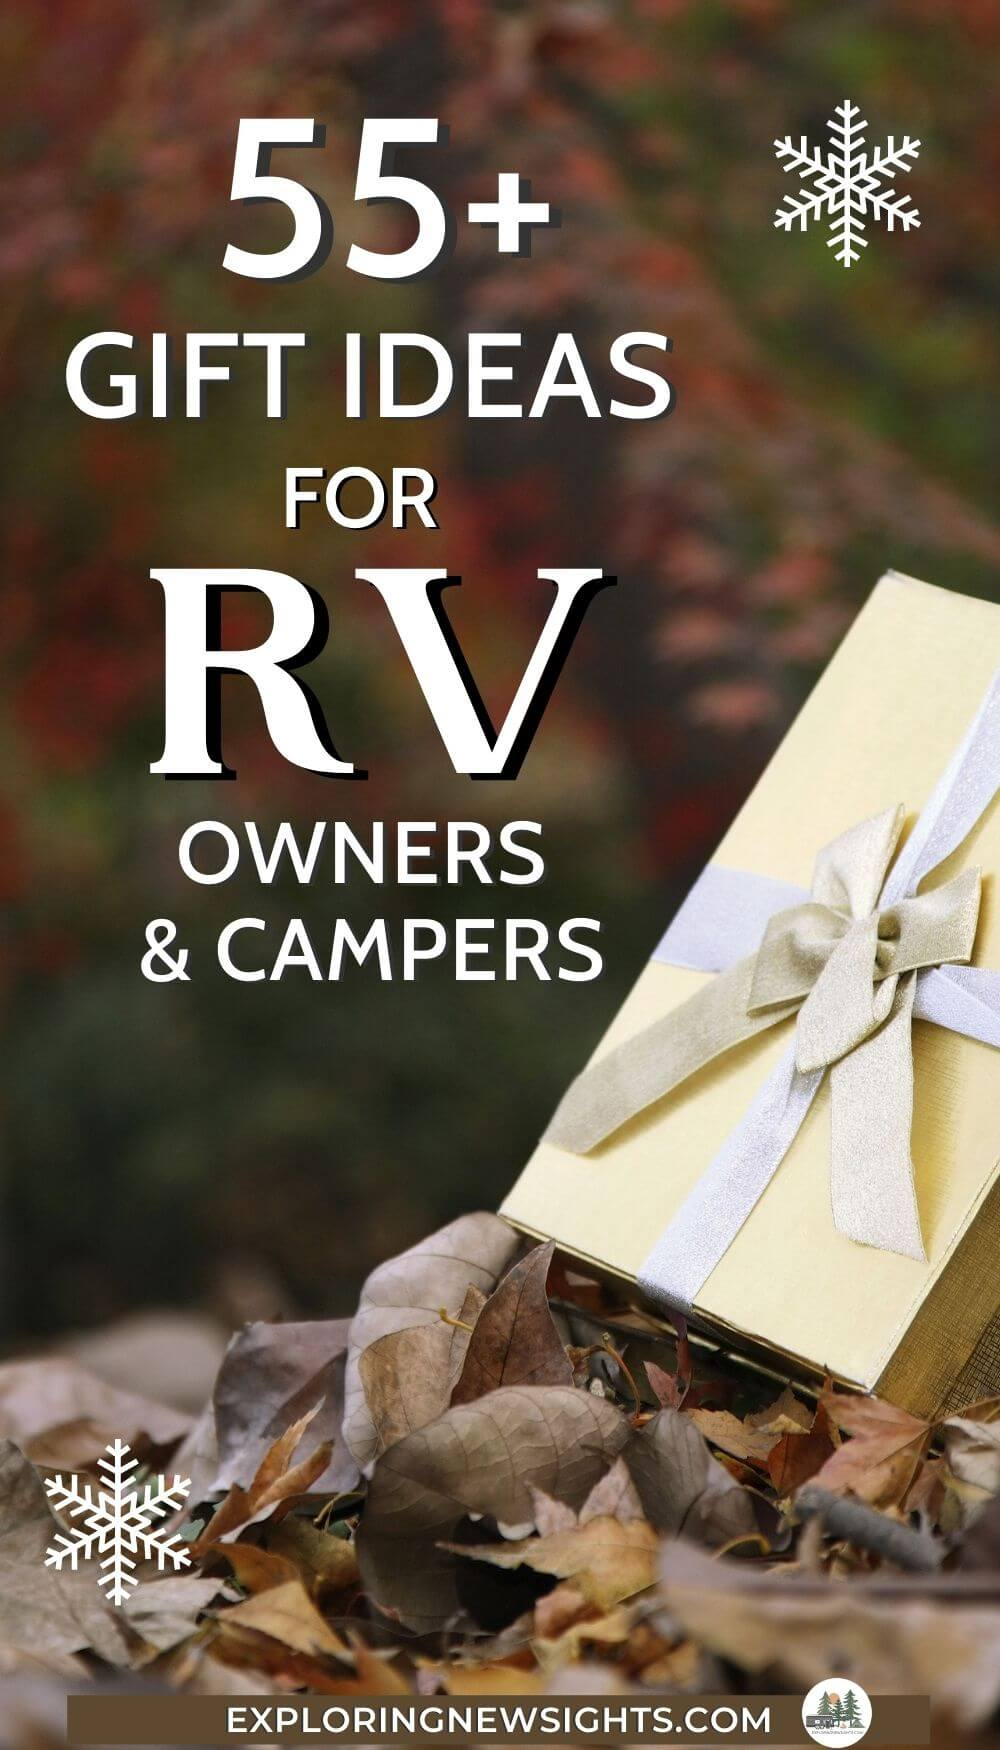 Gift Ideas for RV Owners